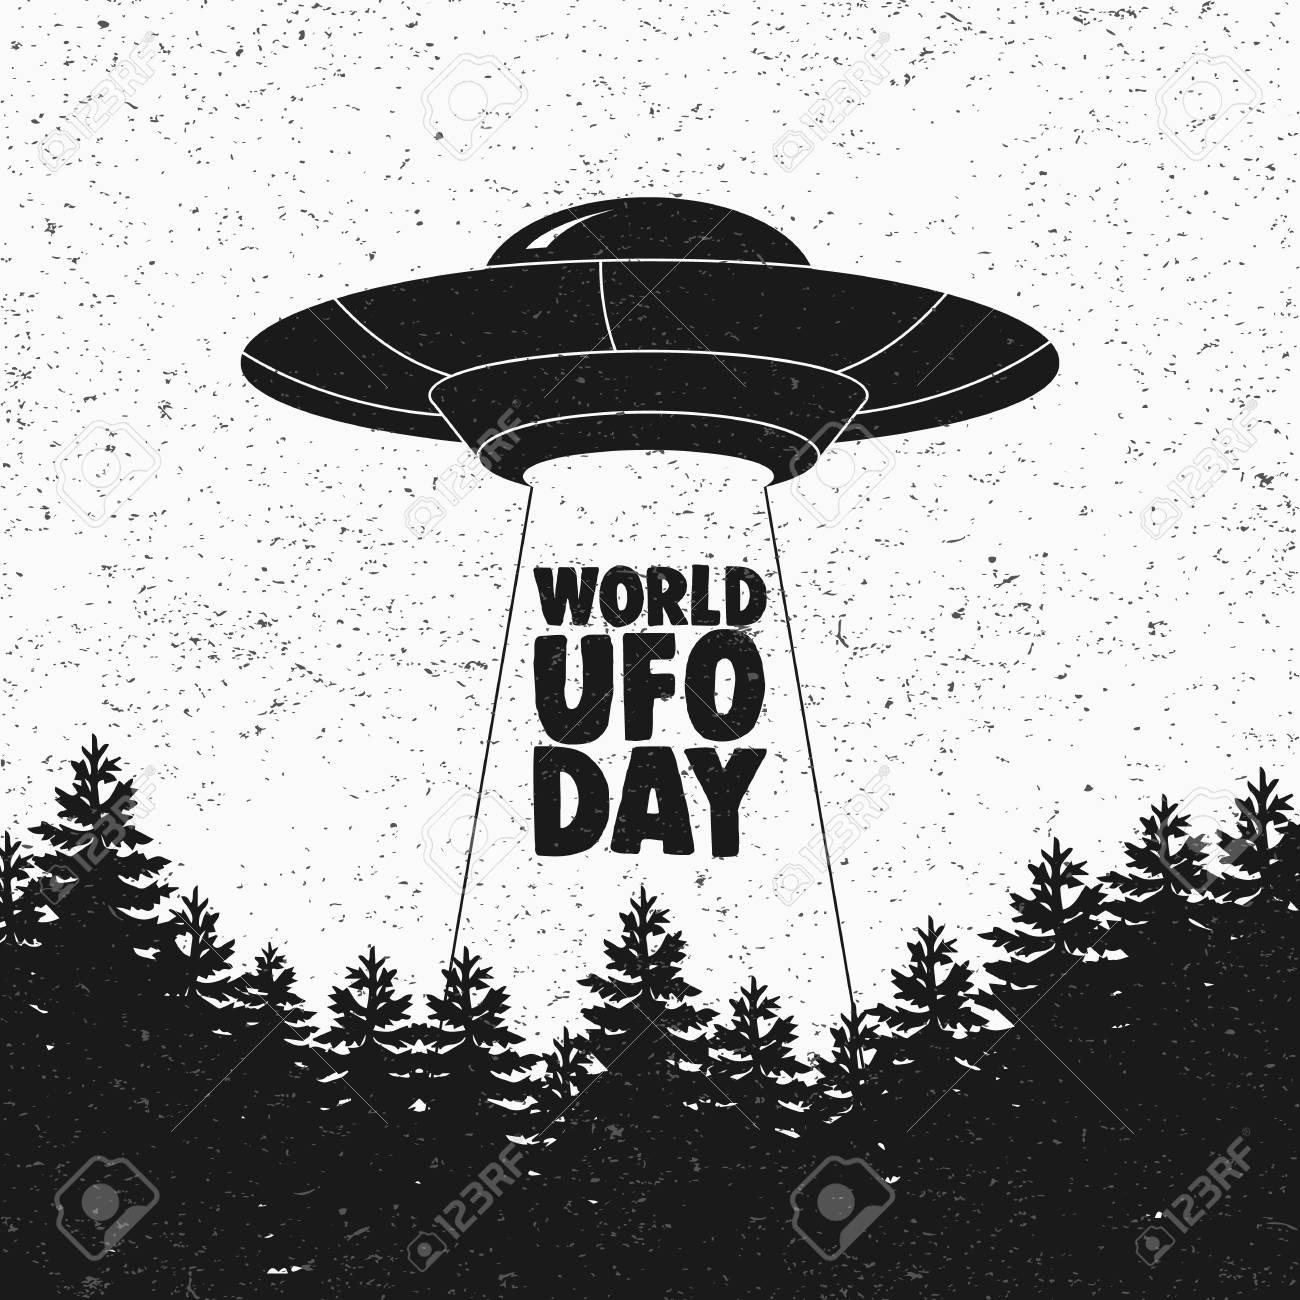 Ufo Flying Spaceship World Ufo Day Flying Saucer Vector Royalty Free Cliparts Vectors And Stock Illustration Image 104878534